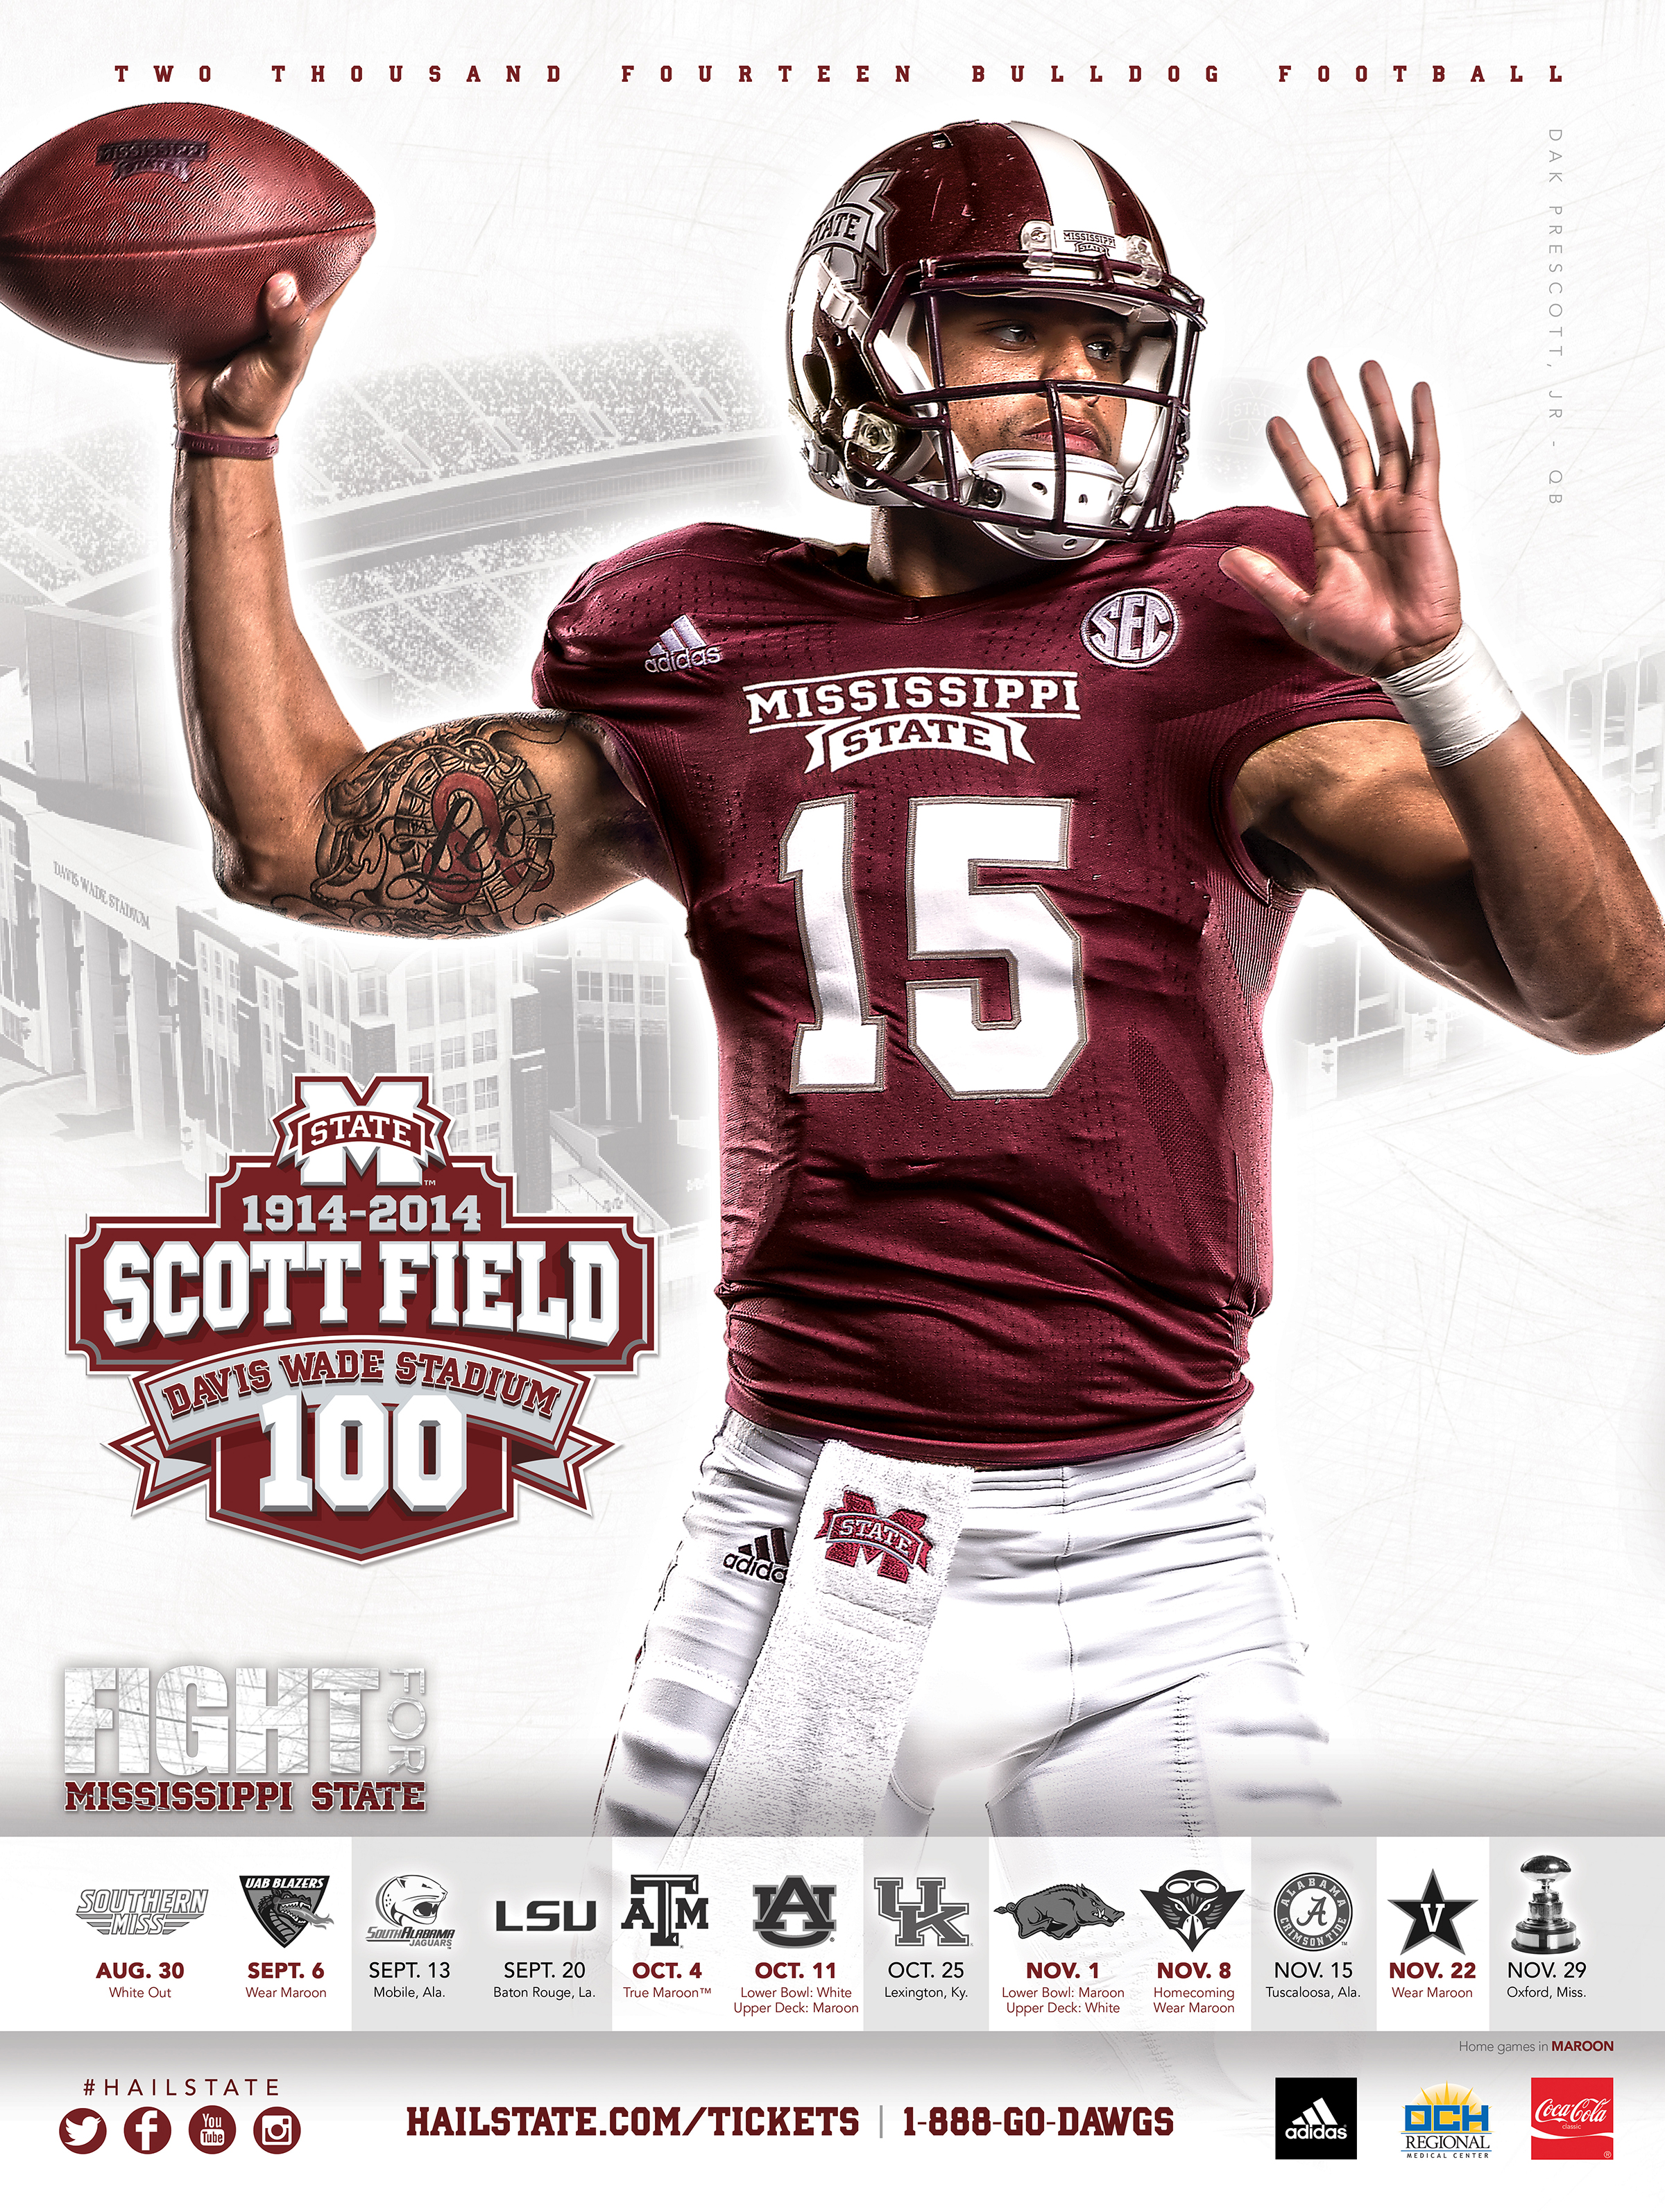 2014 MSU football schedule posters released HailStateBEAT 2400x3189